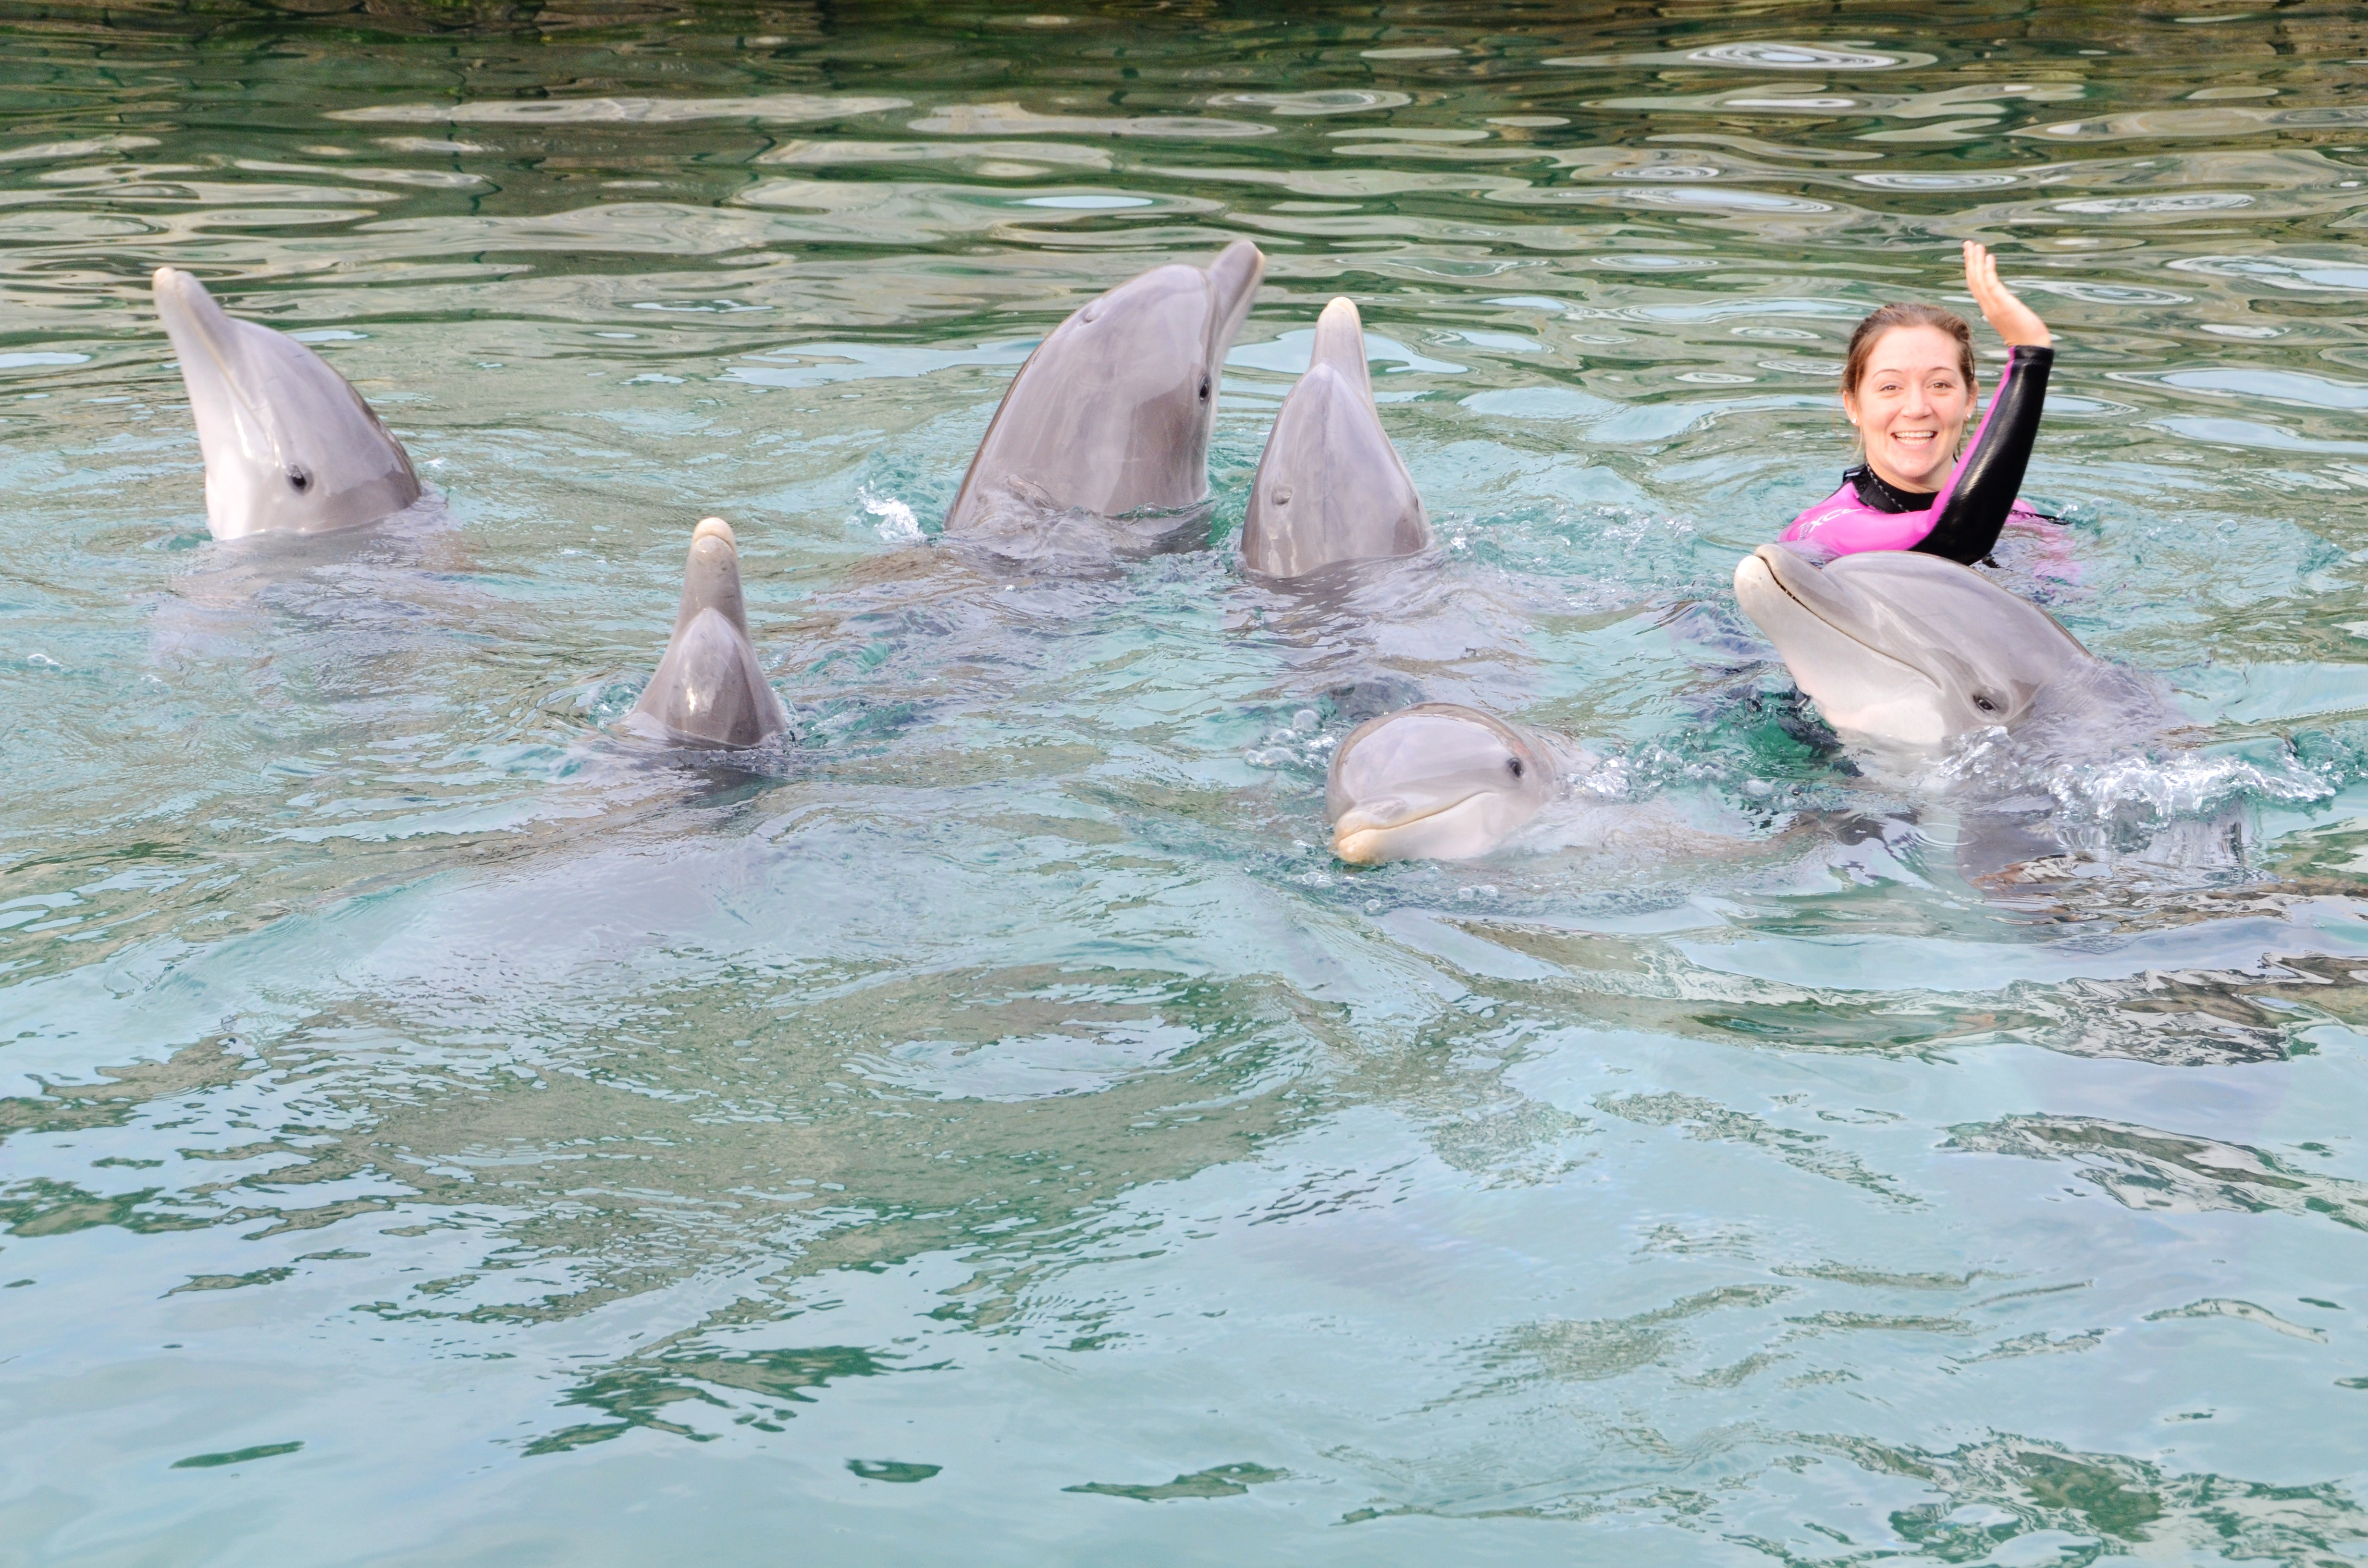 dolphin trainers with a group of dolphins